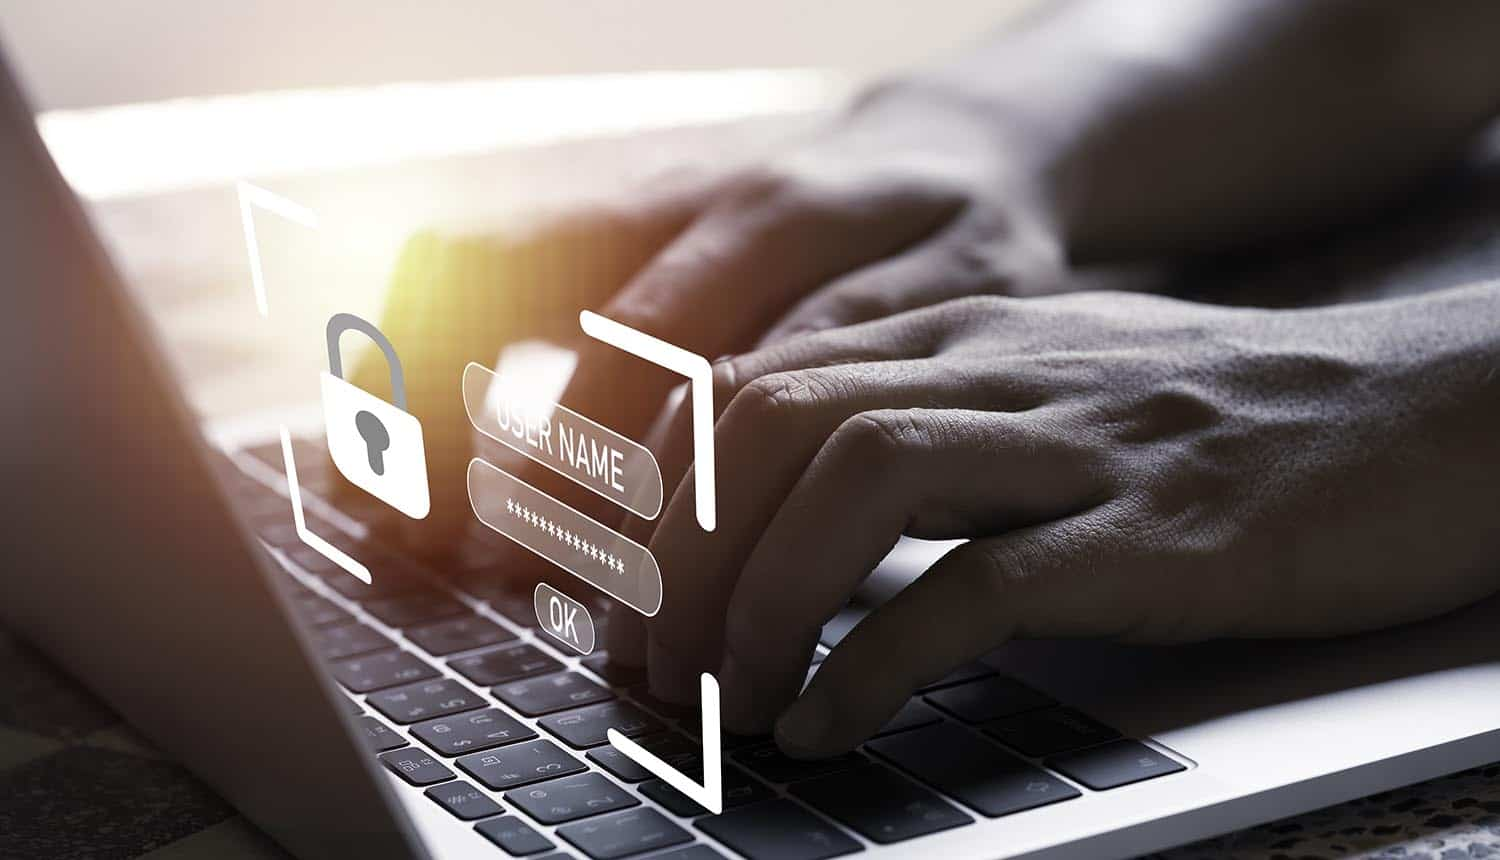 Hand with virtual master key for using laptop computer showing cloud security and data breach